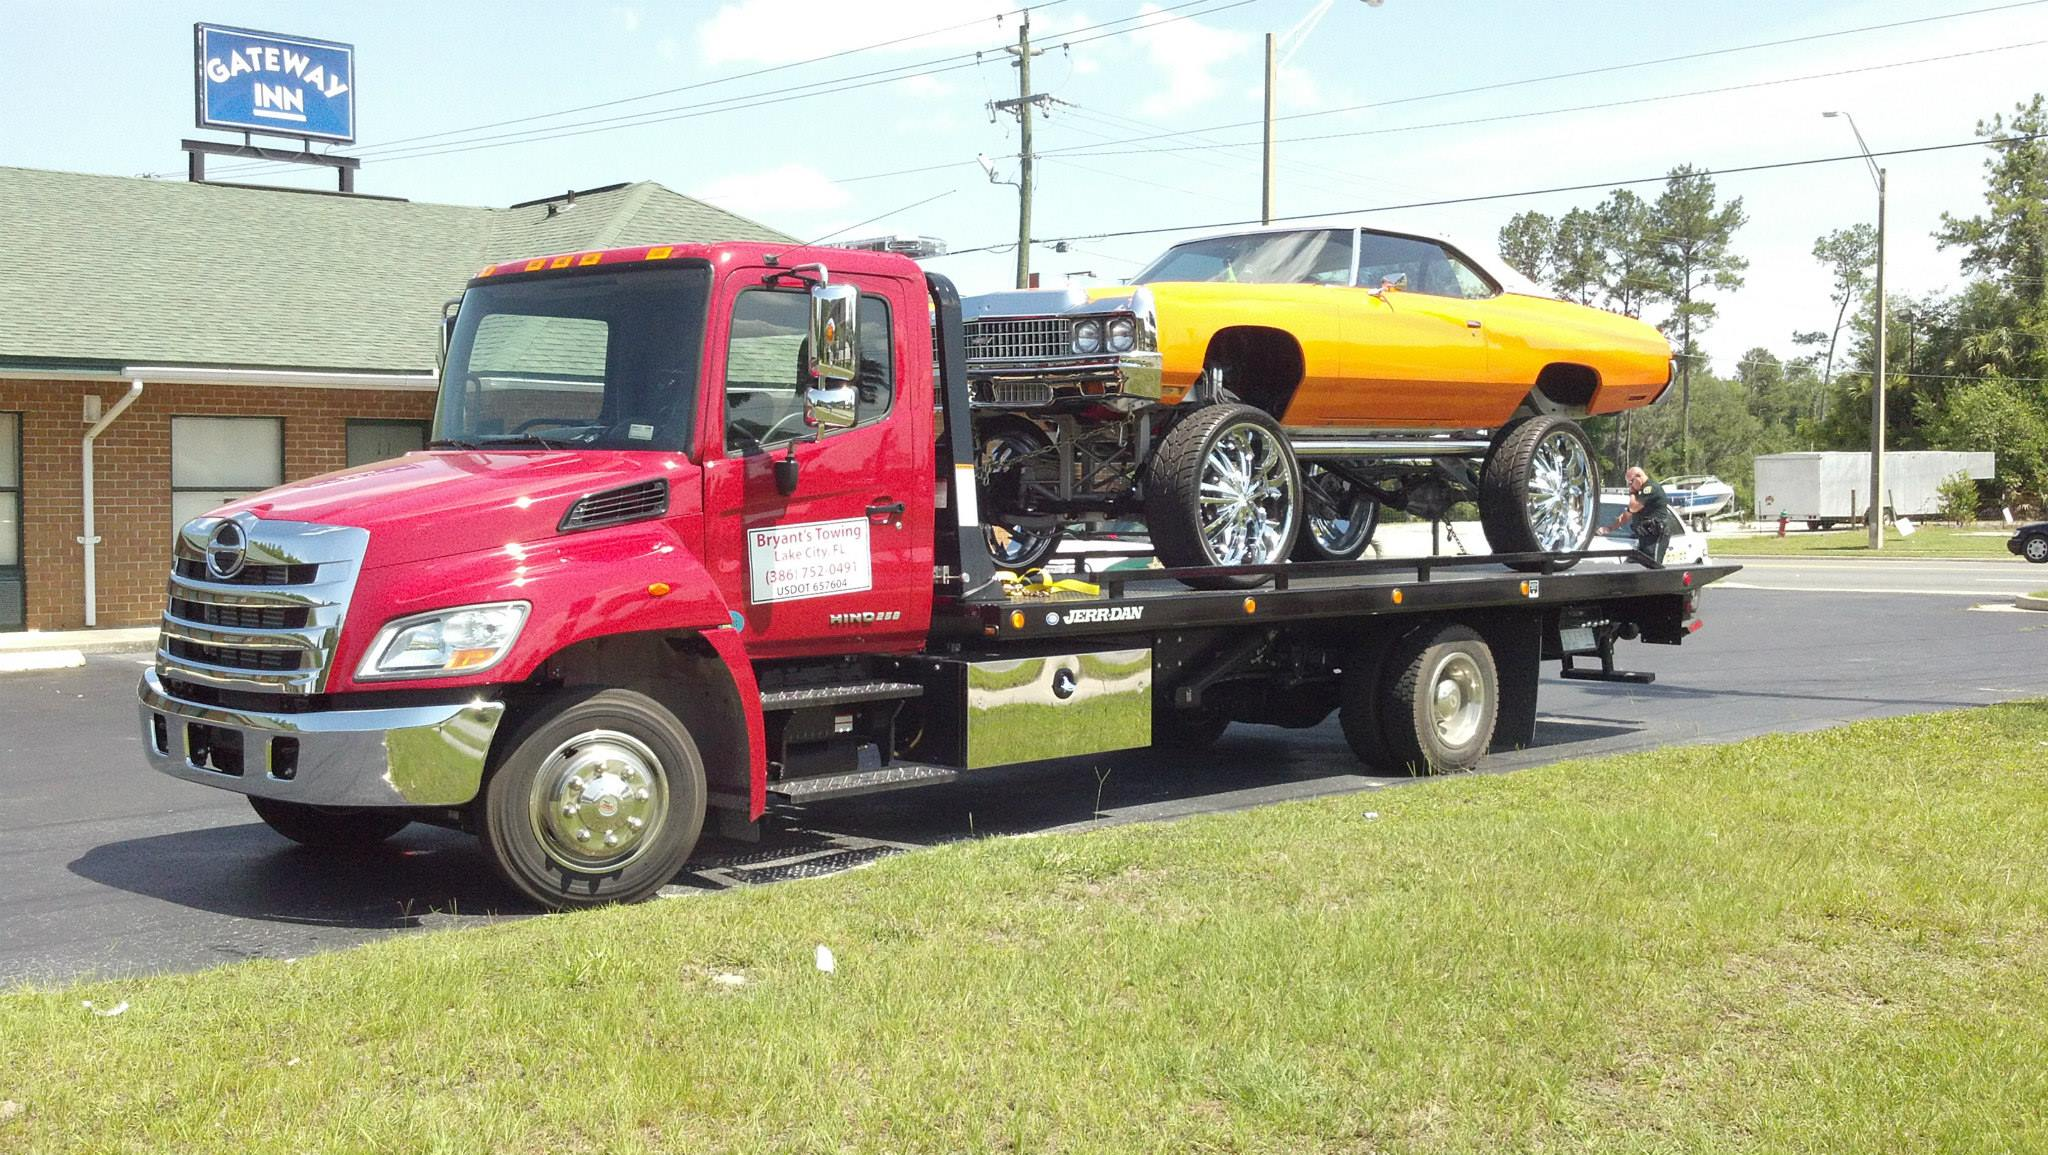 Aaa Used Cars >> Towing Services Lake City Florida 24 Hour | Bryant's Towing